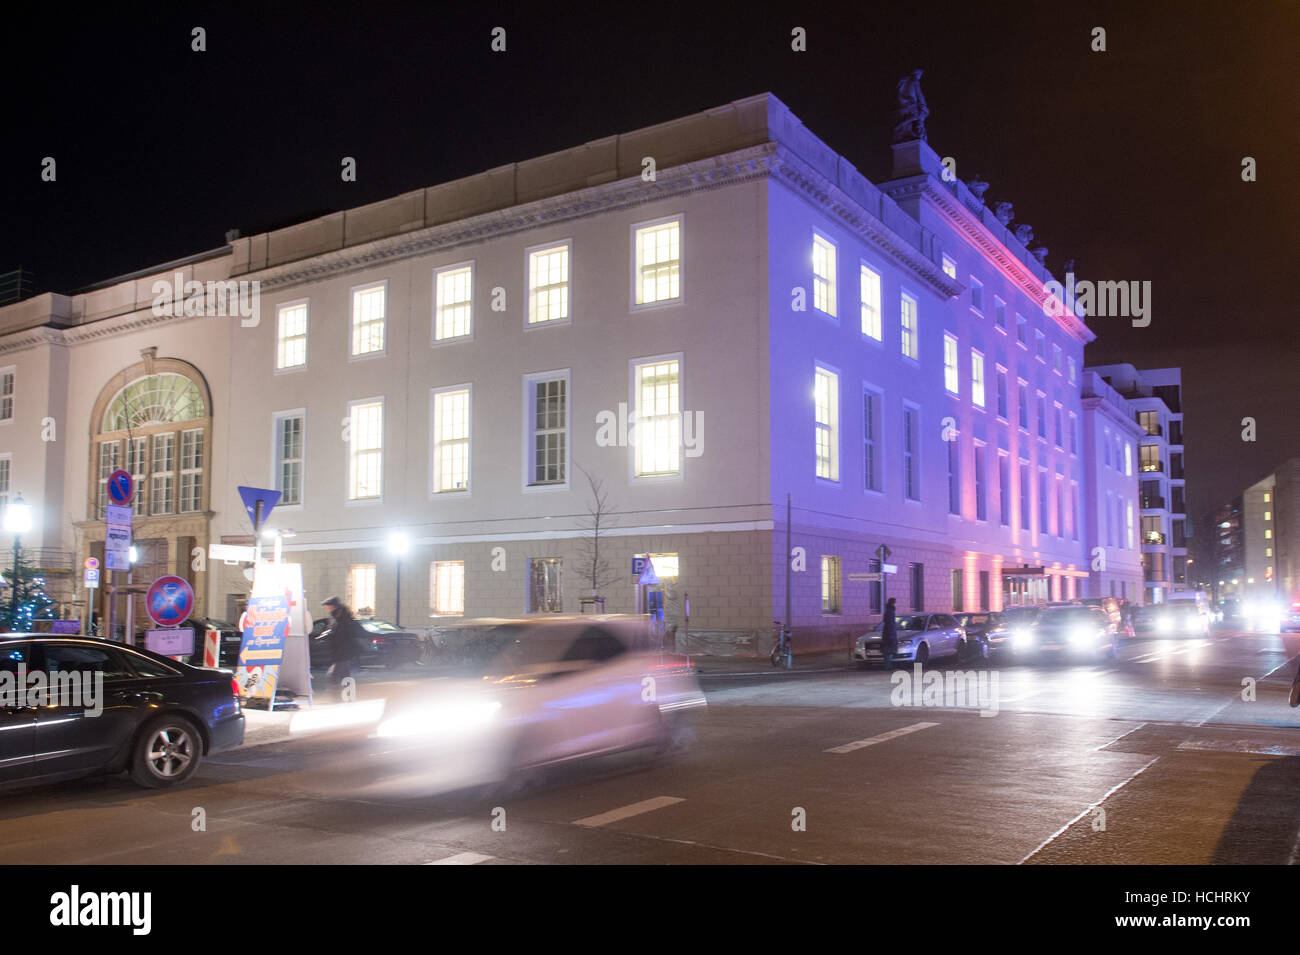 Berlin, Germany. 8th Dec, 2016. View of the Barenboim-Said-Akademie in Berlin, Germany, 8 December 2016. The academy - Stock Image